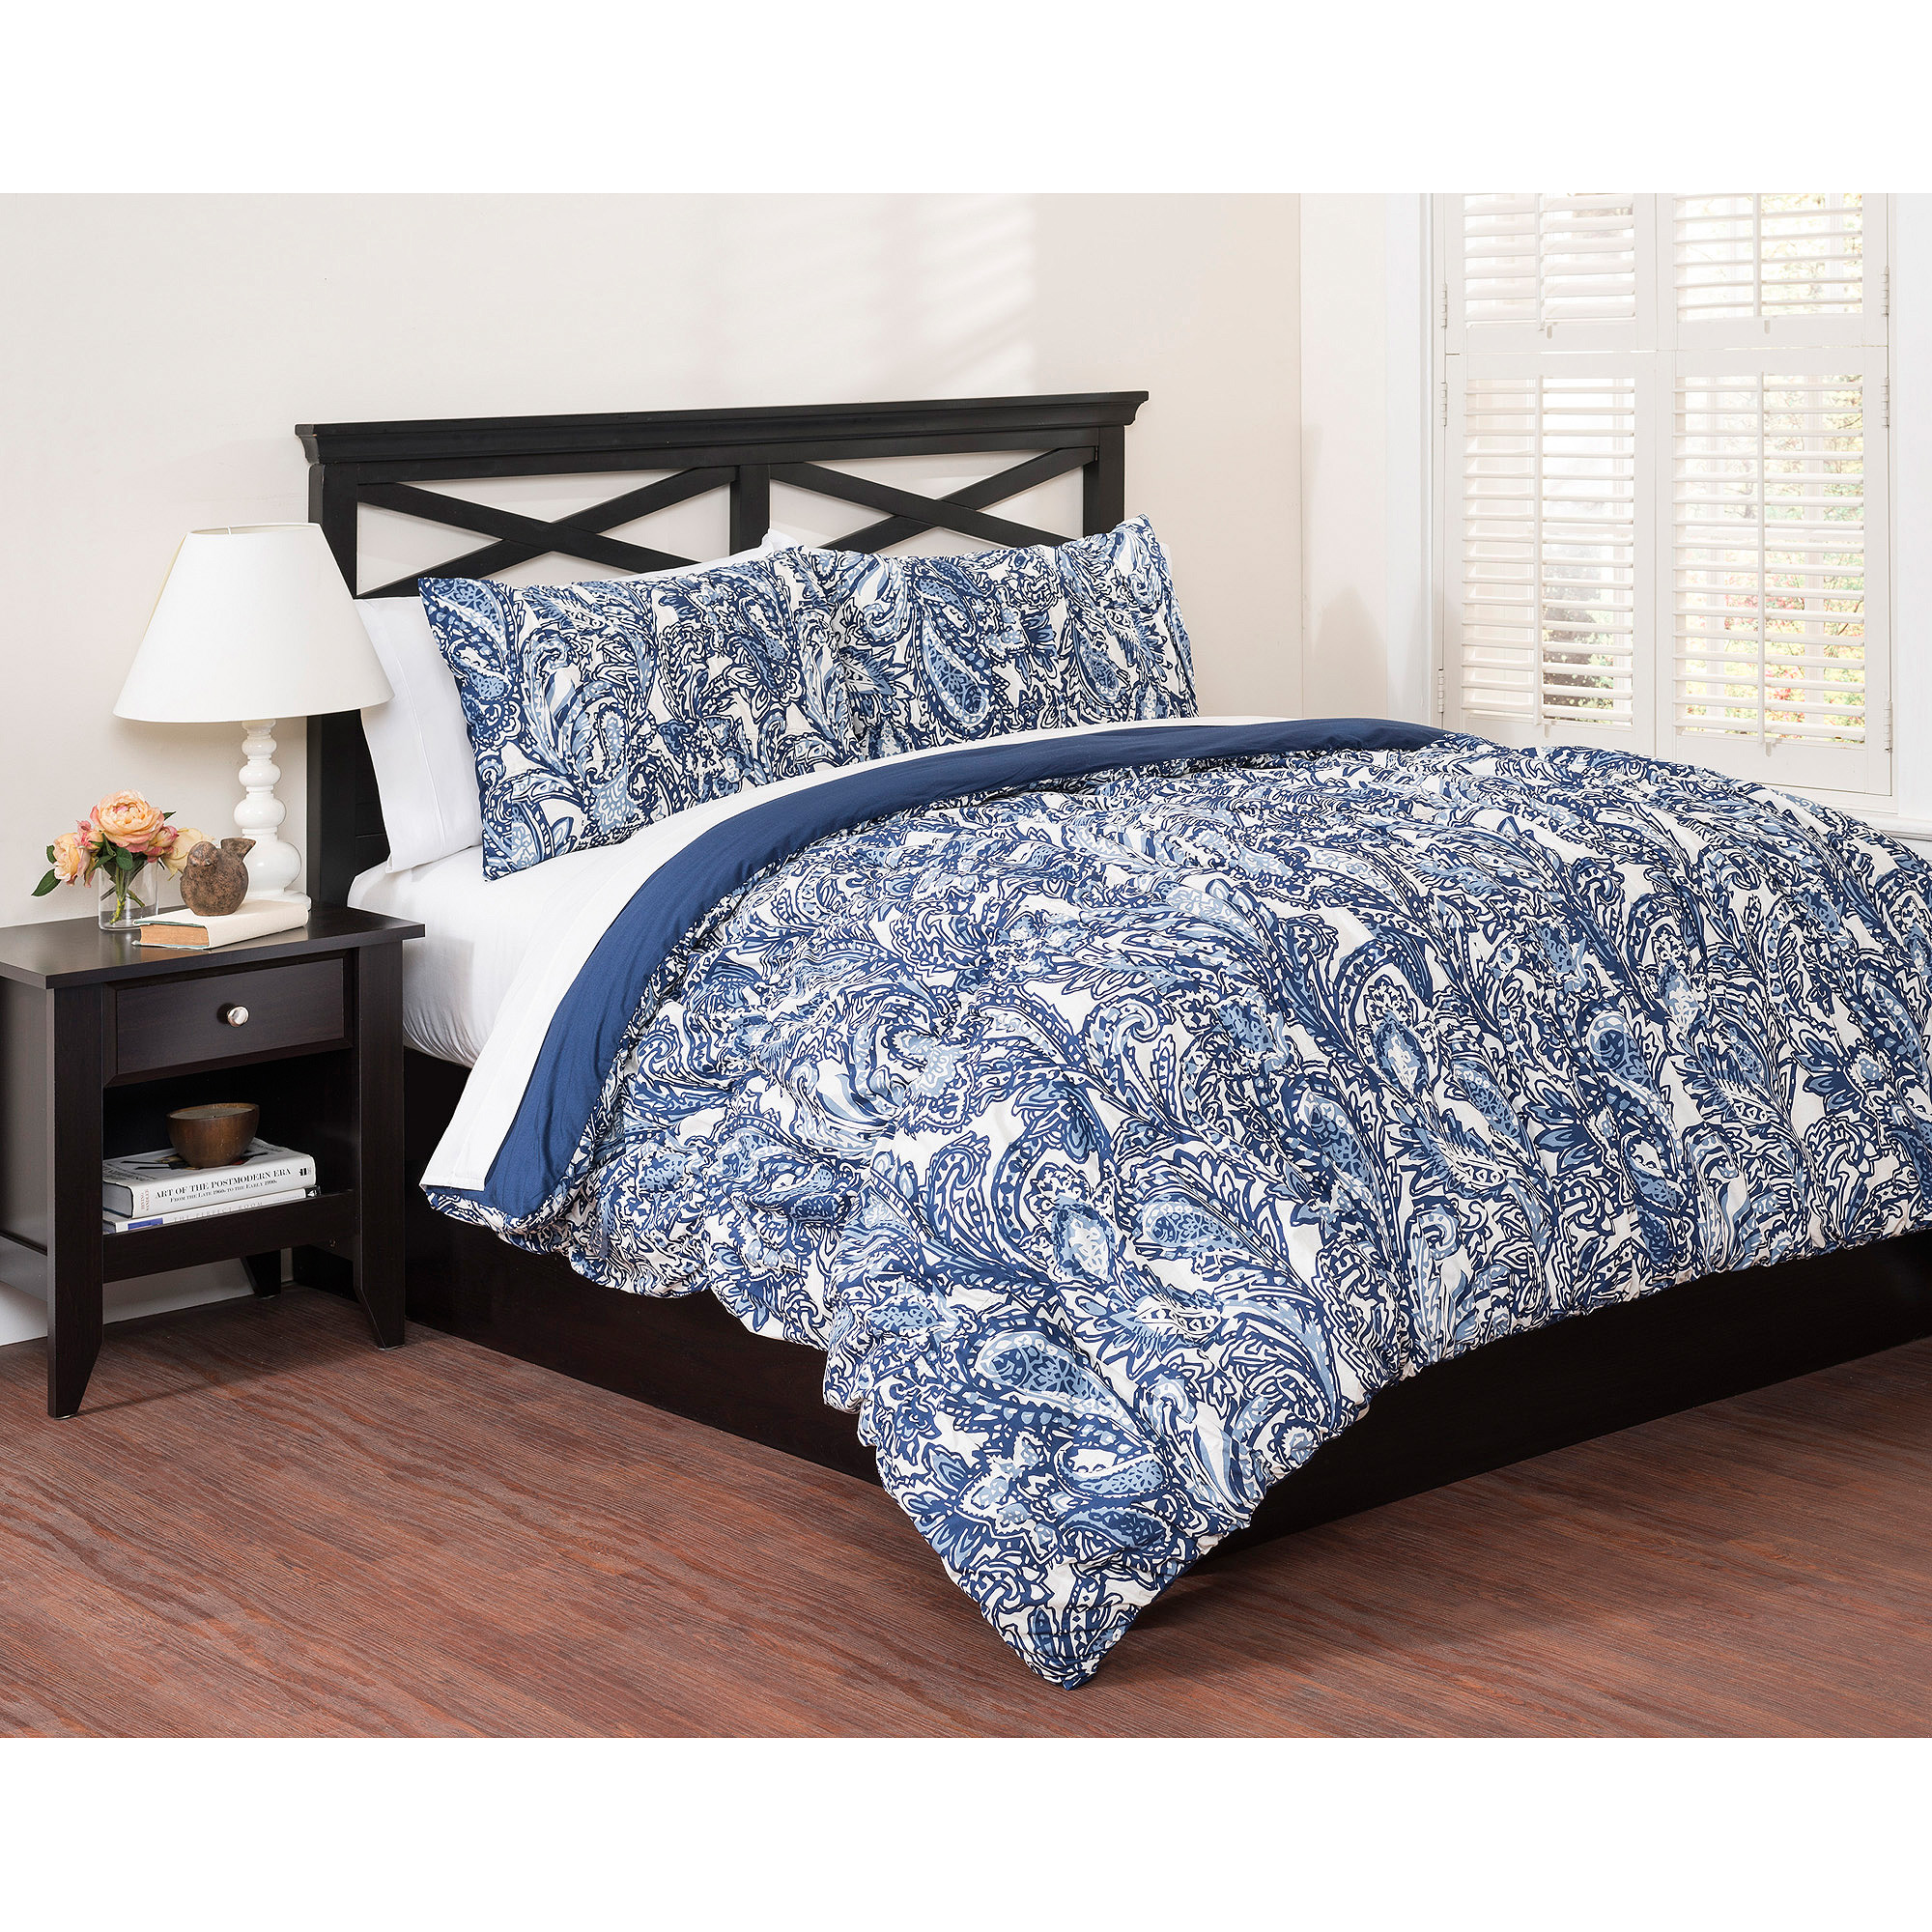 East end living vintage paisley 3 piece bedding duvet set blue